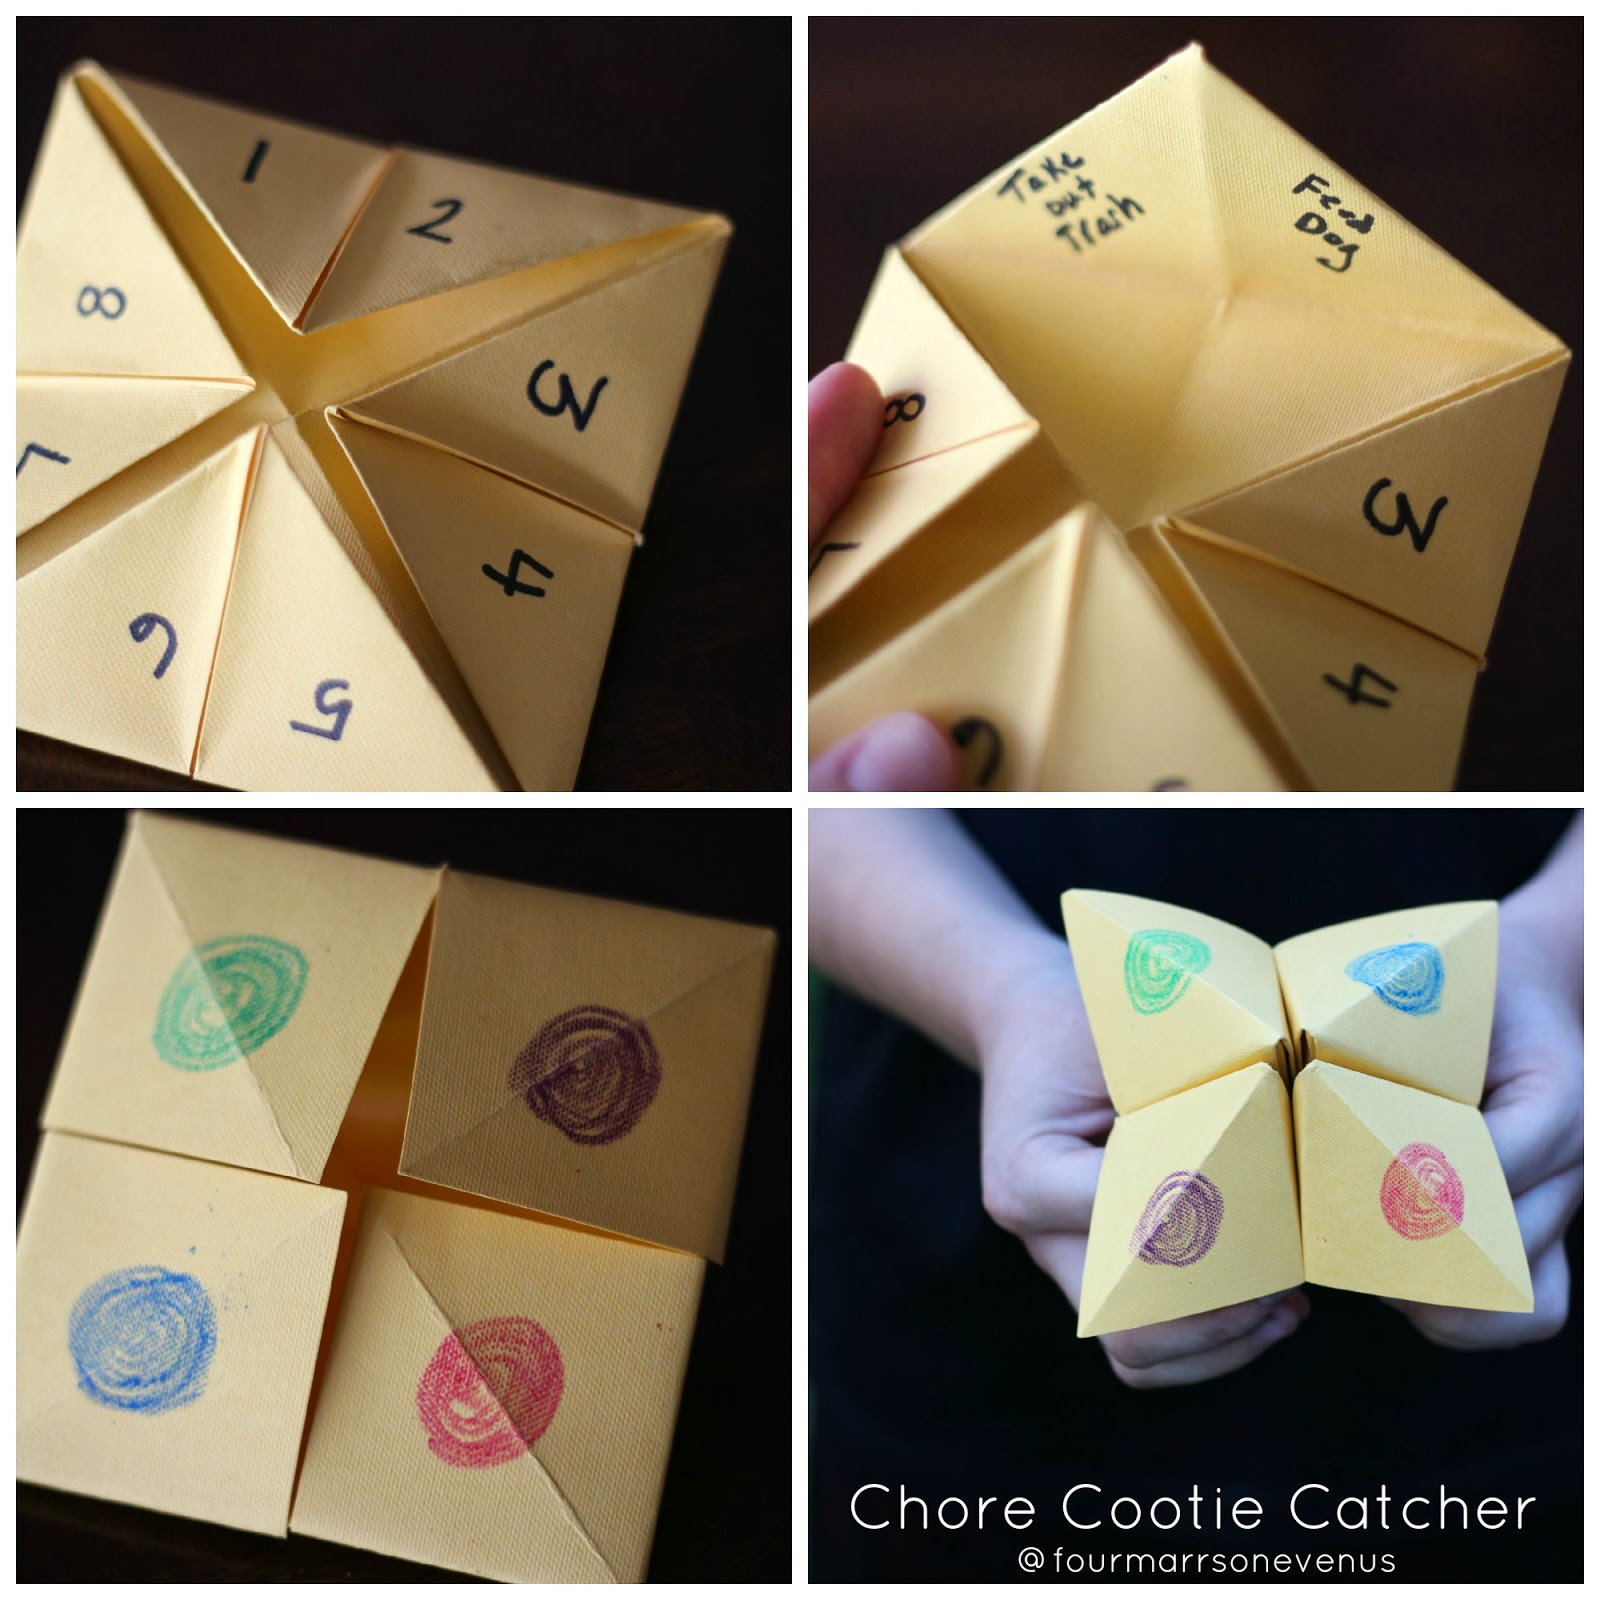 How to make a chore cootie catcher